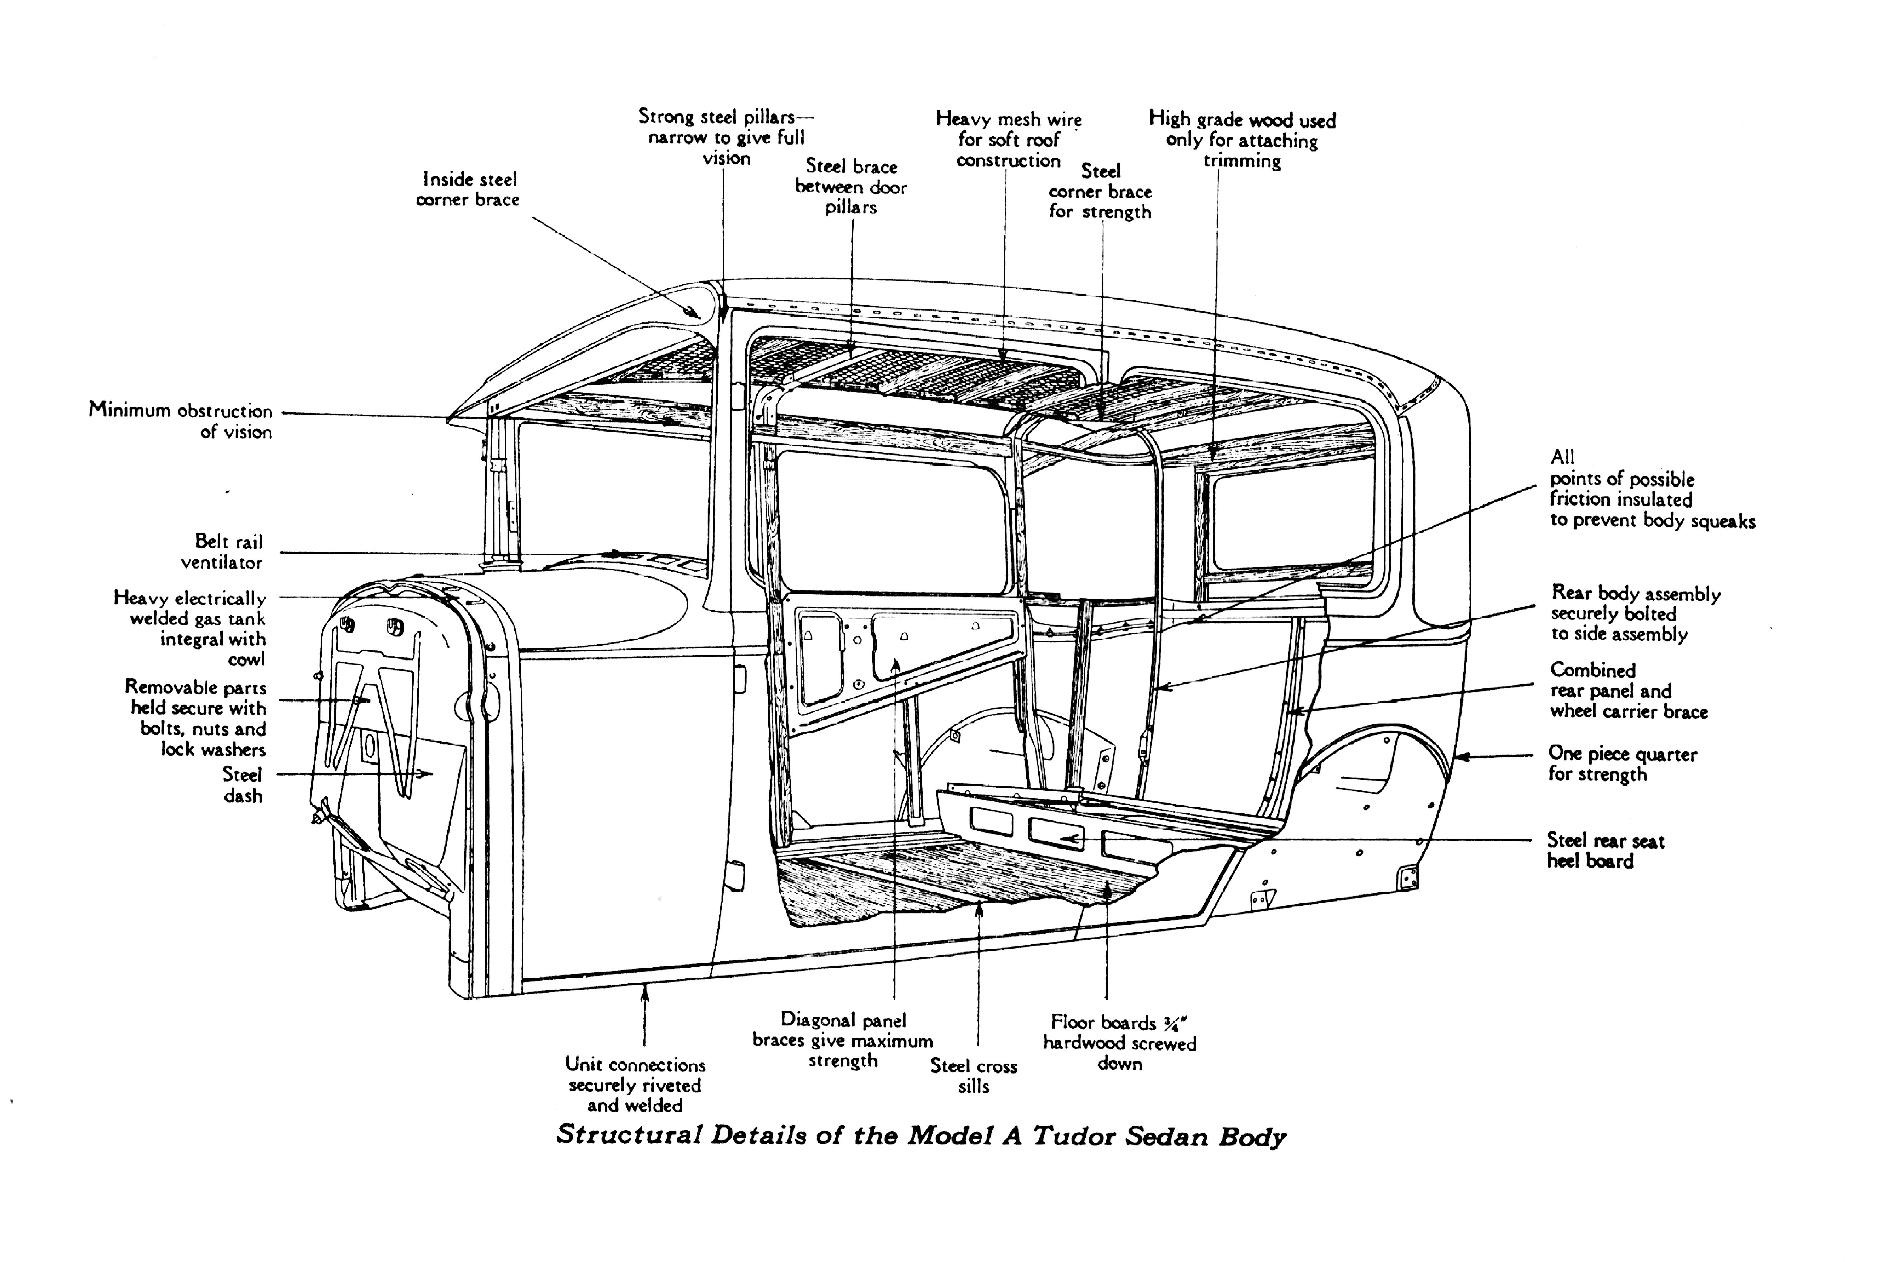 hight resolution of ford model a schematics wiring diagrams favorites ford model a engine schematics ford model a body